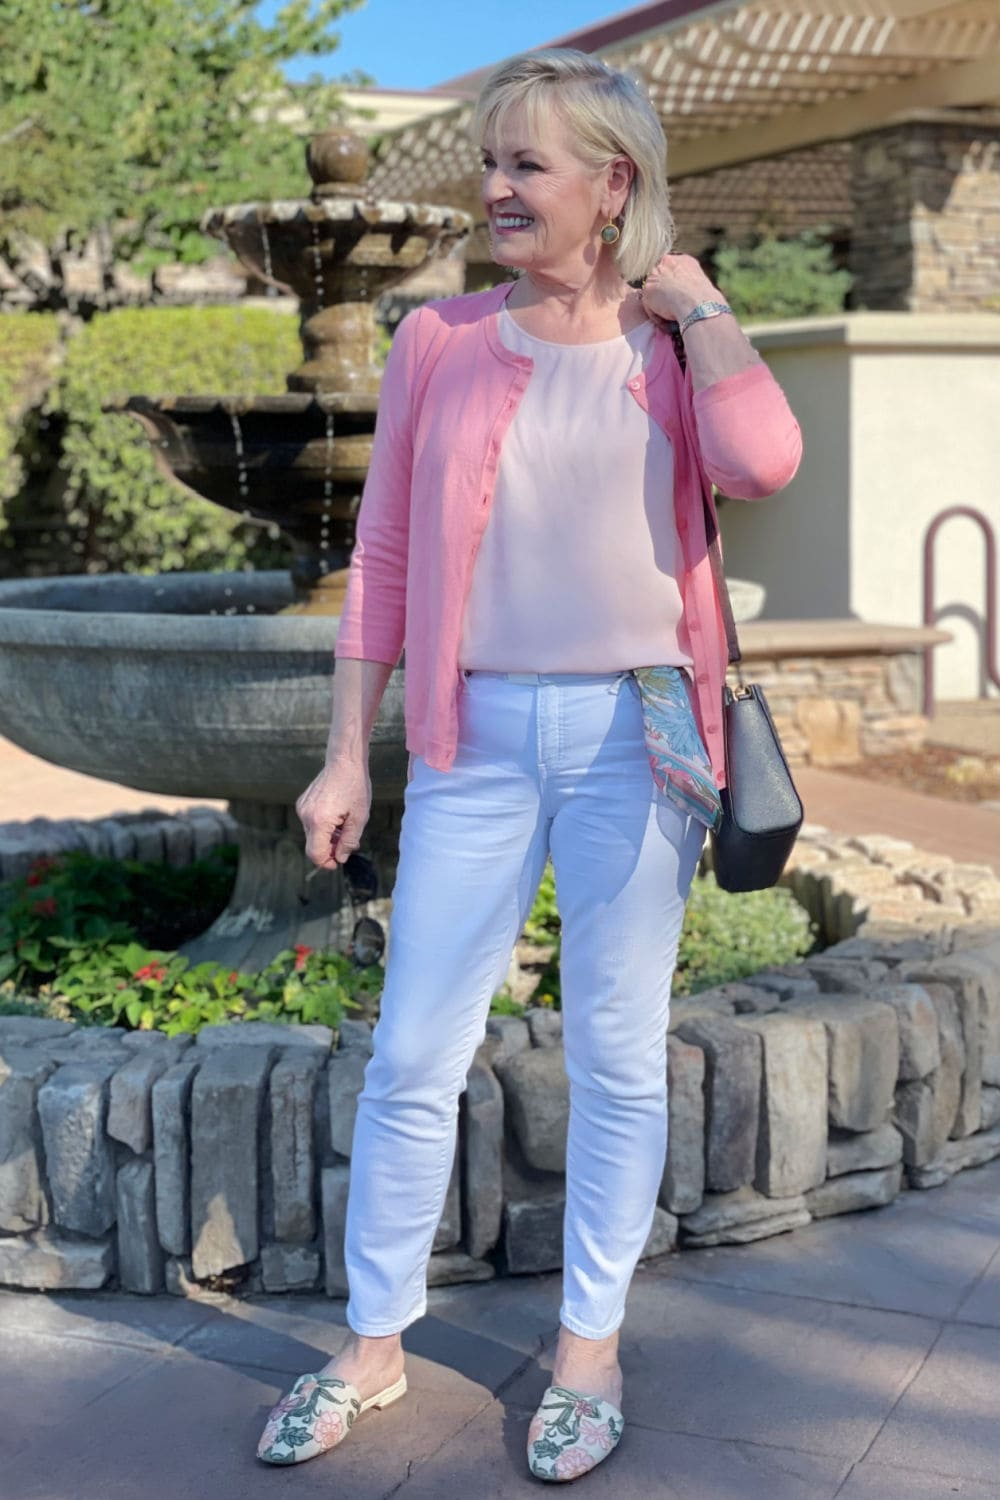 over 50 blogger jennifer of a well styled life wearing colors she loves in salmon, pink and white